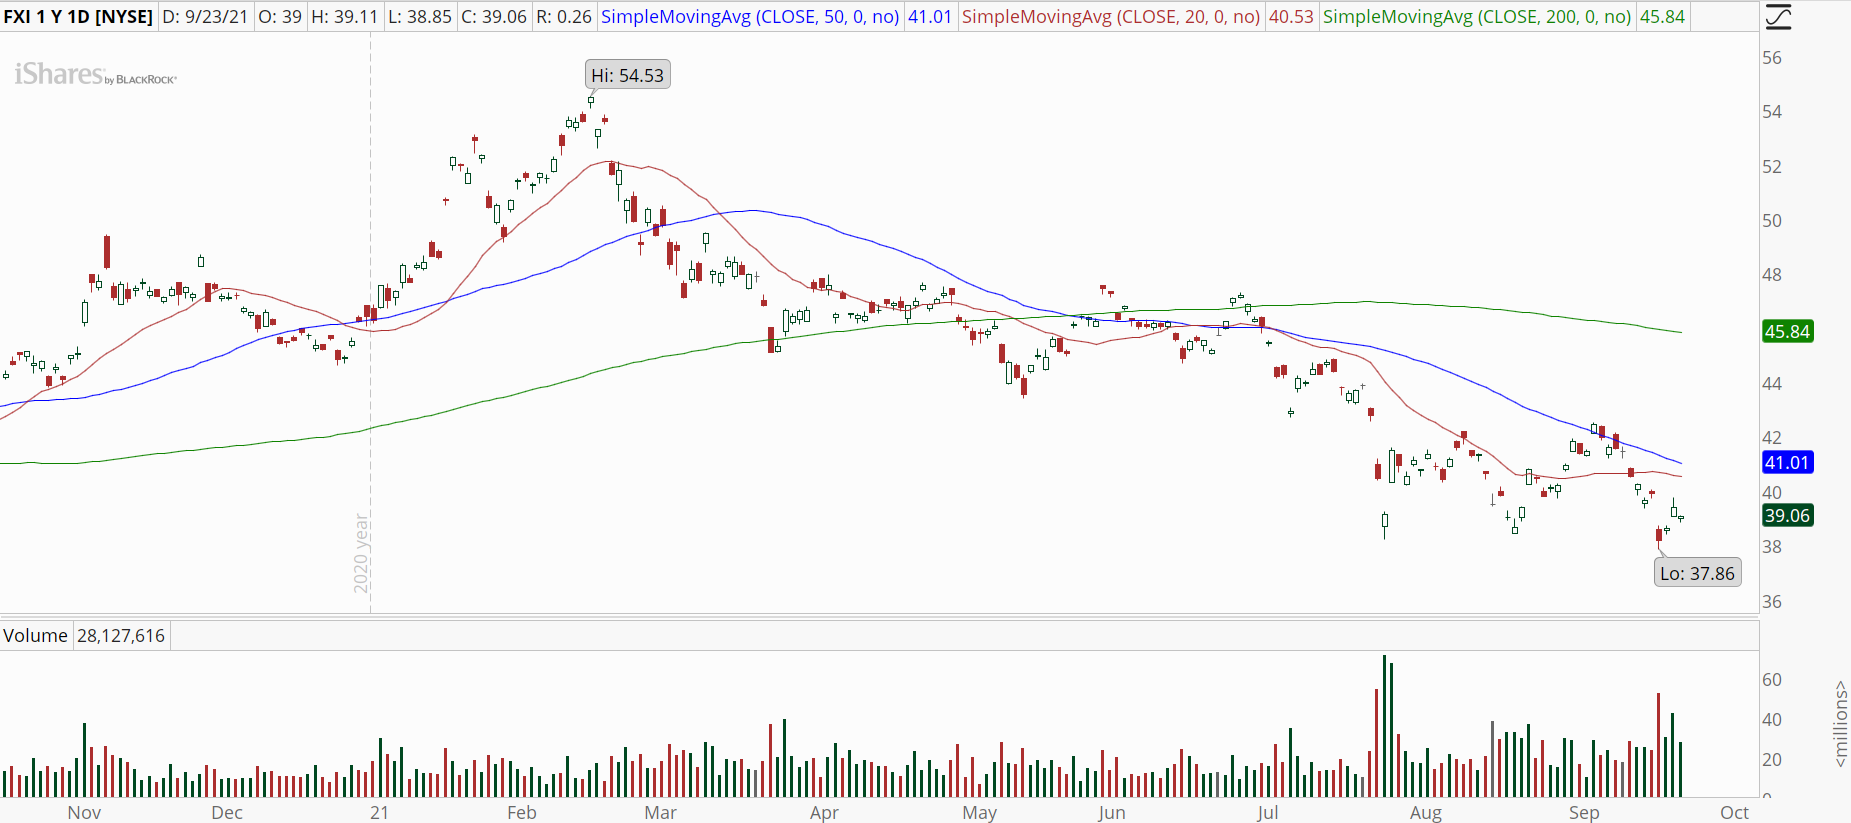 China Large-Cap ETF (FXI) remains stuck in a downtrend